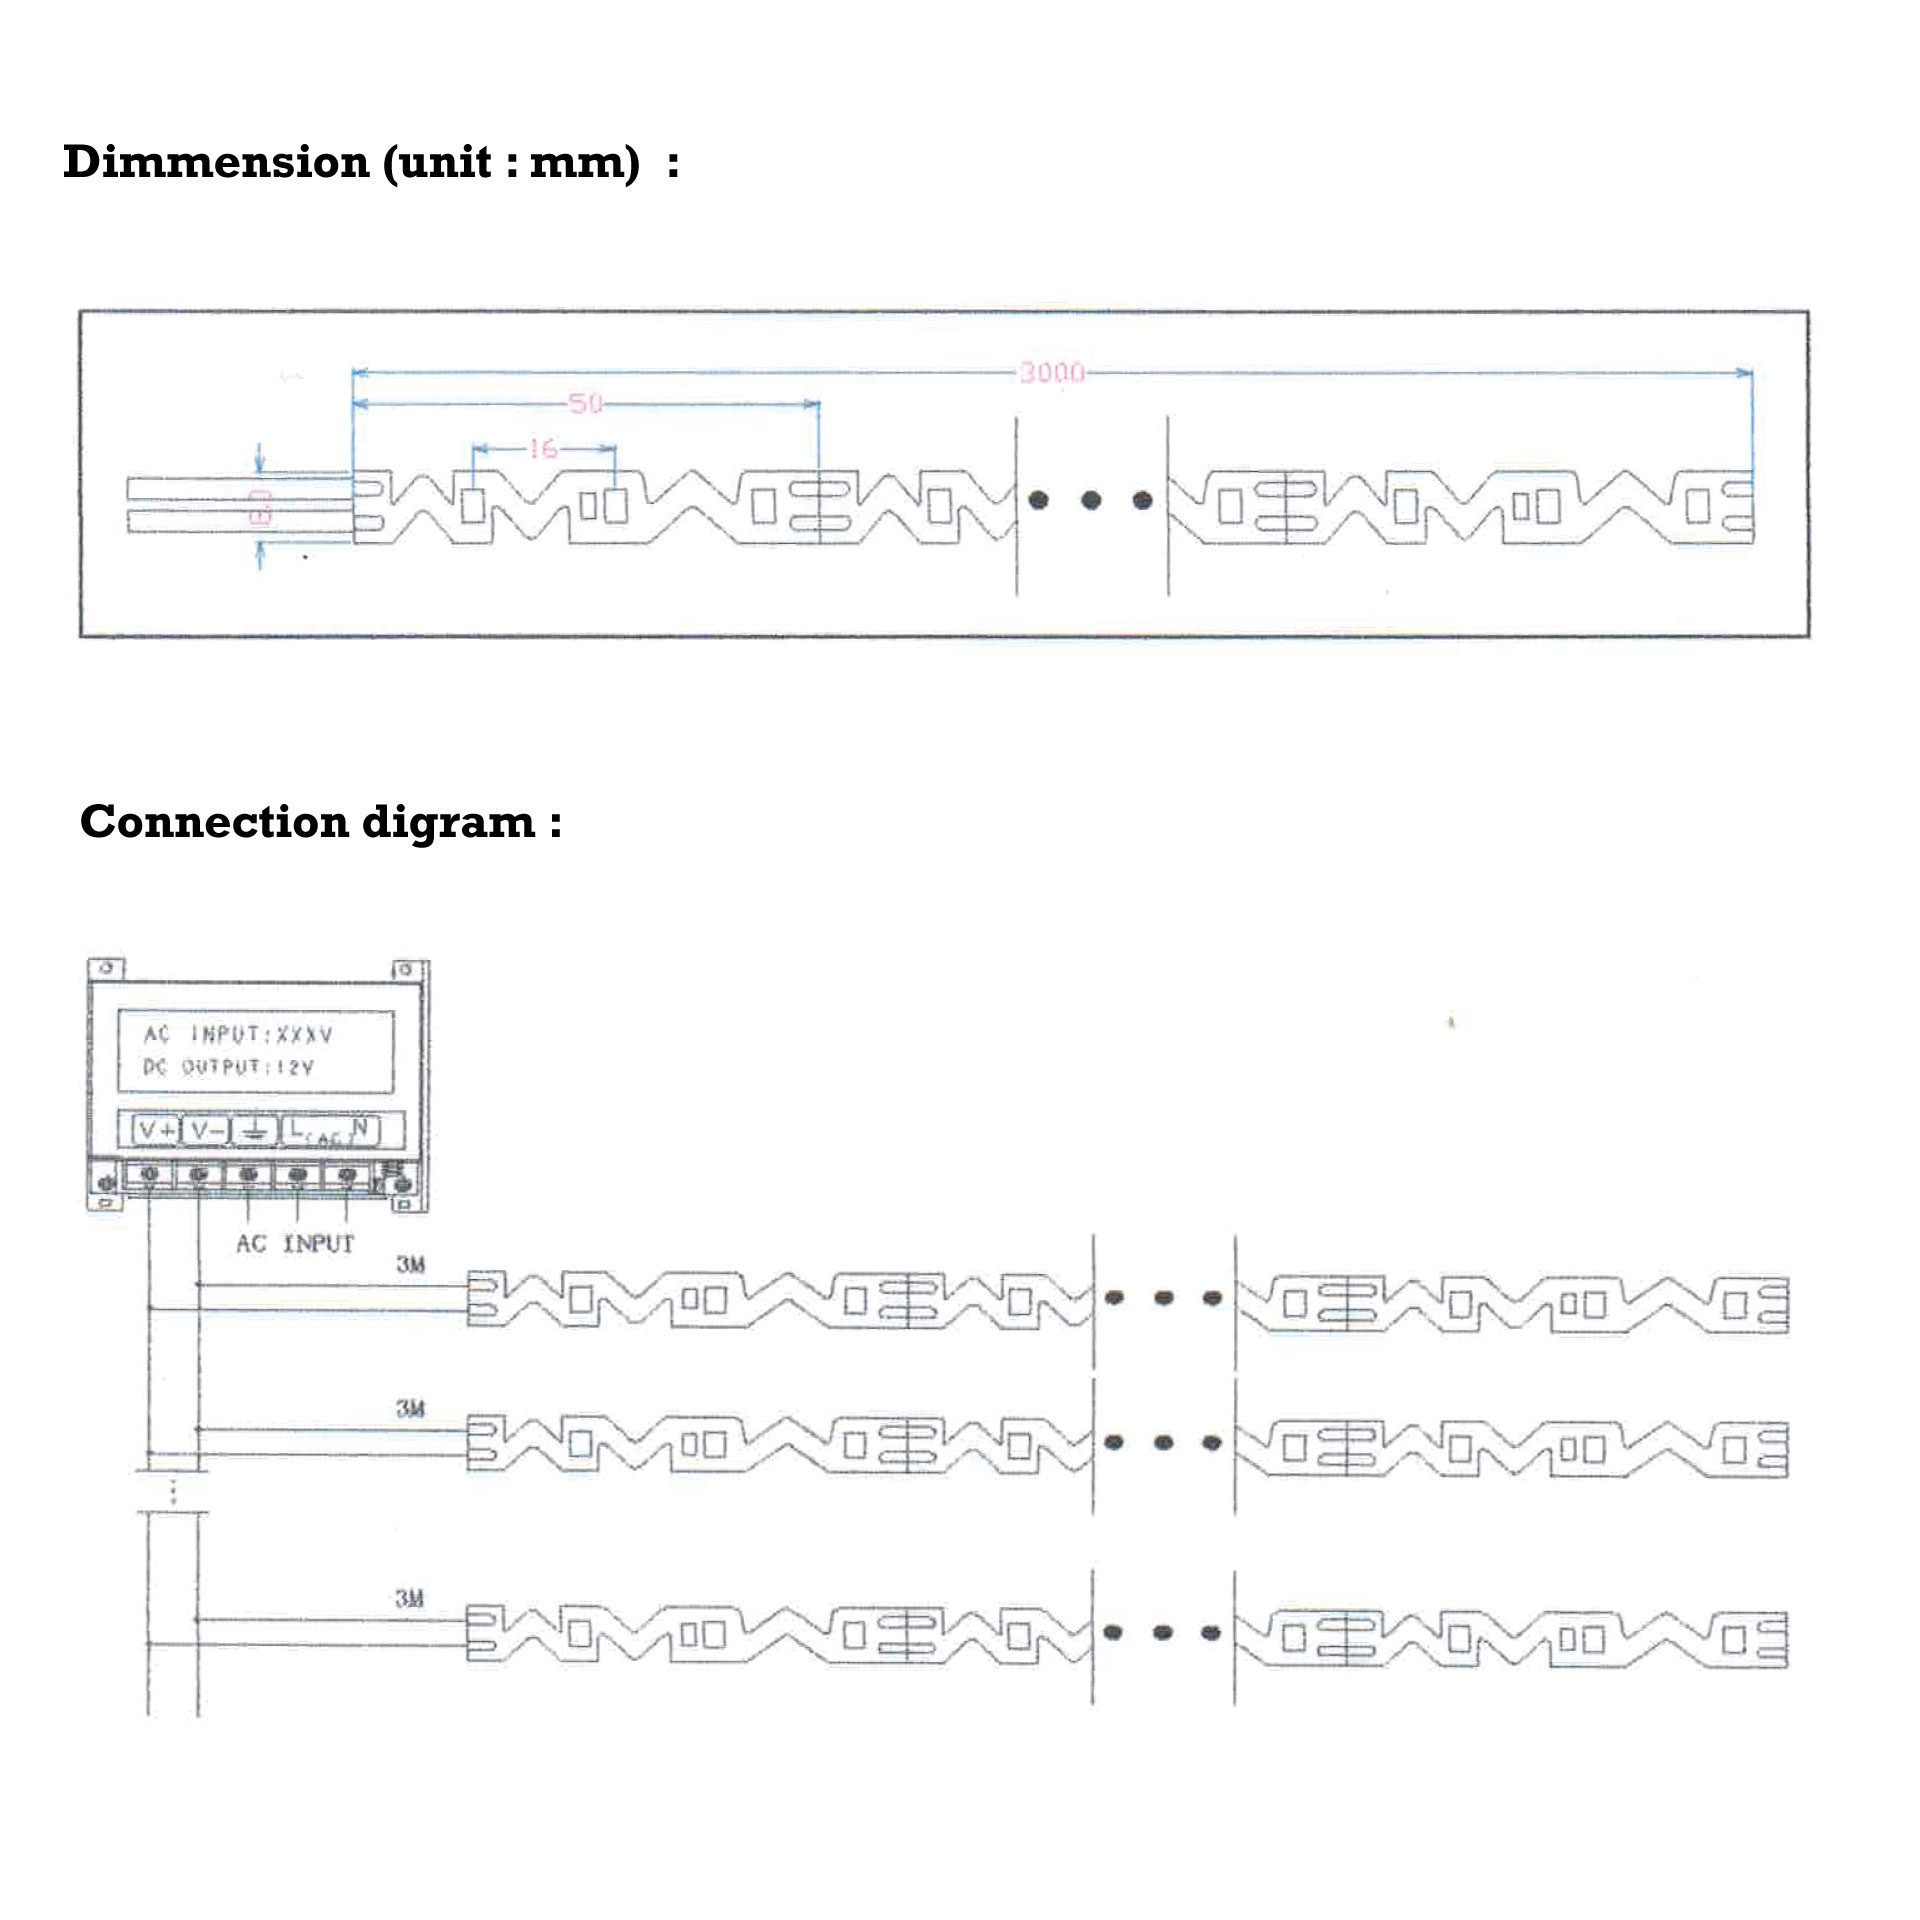 S-Strips-dimmension